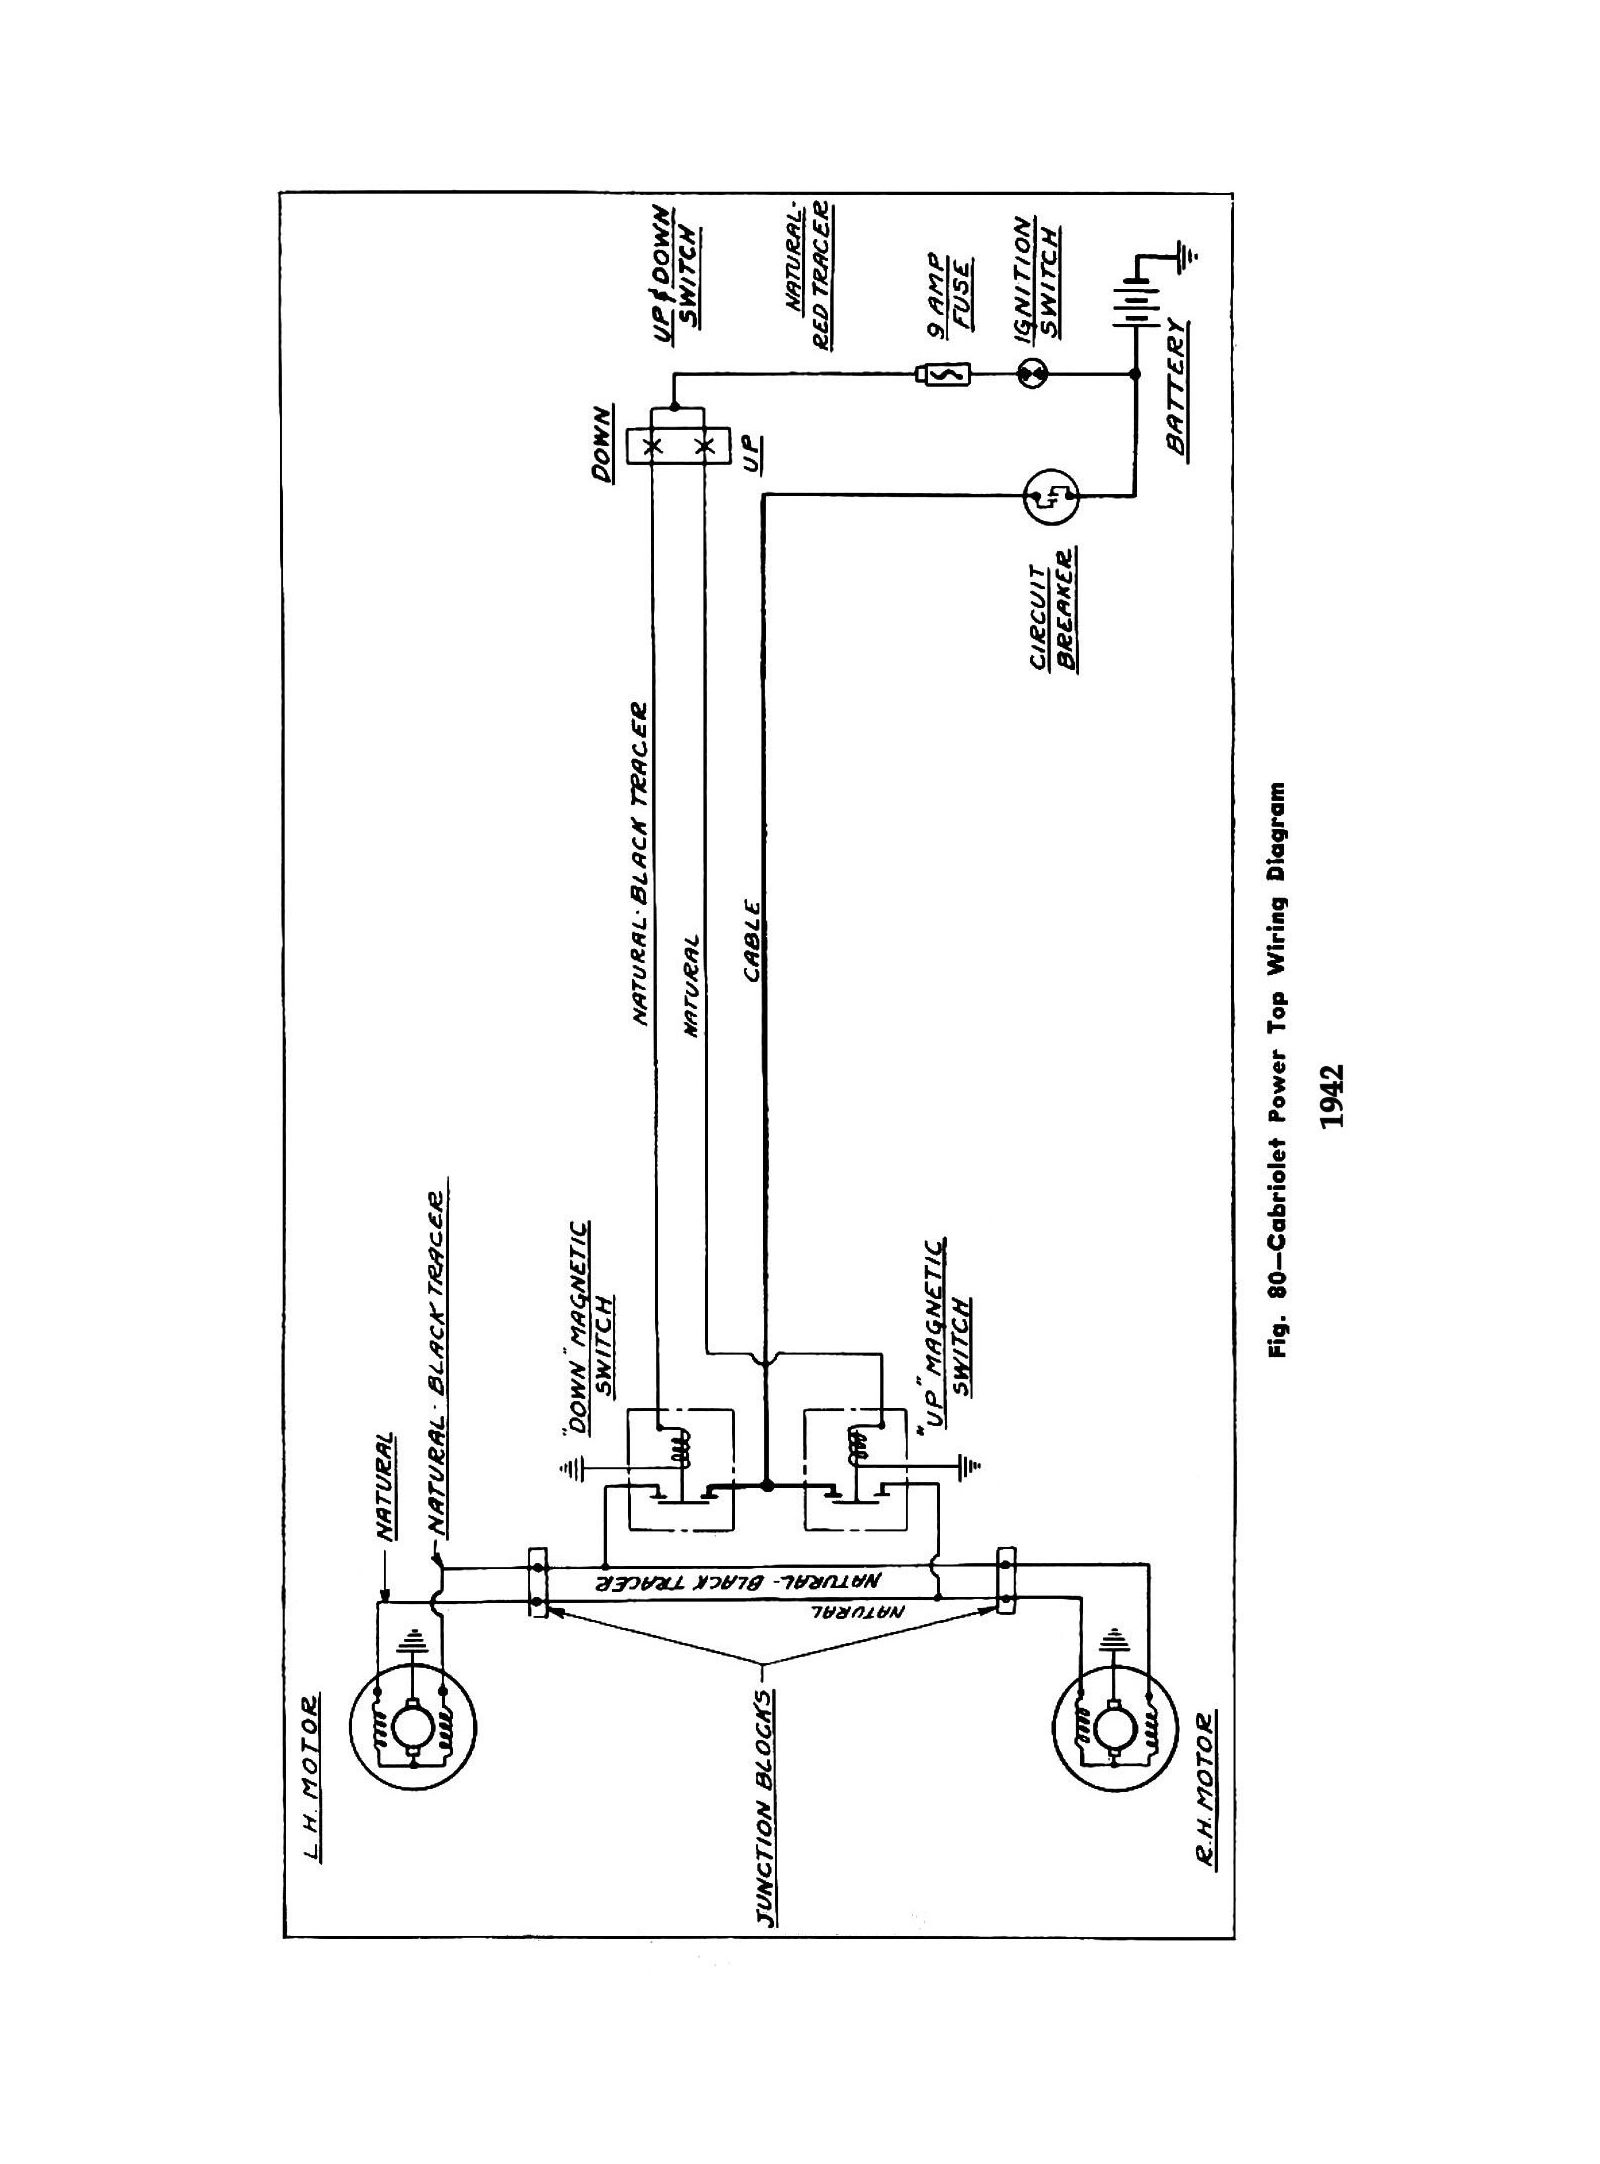 power top wiring diagram for 1942 chevrolet cabriolet